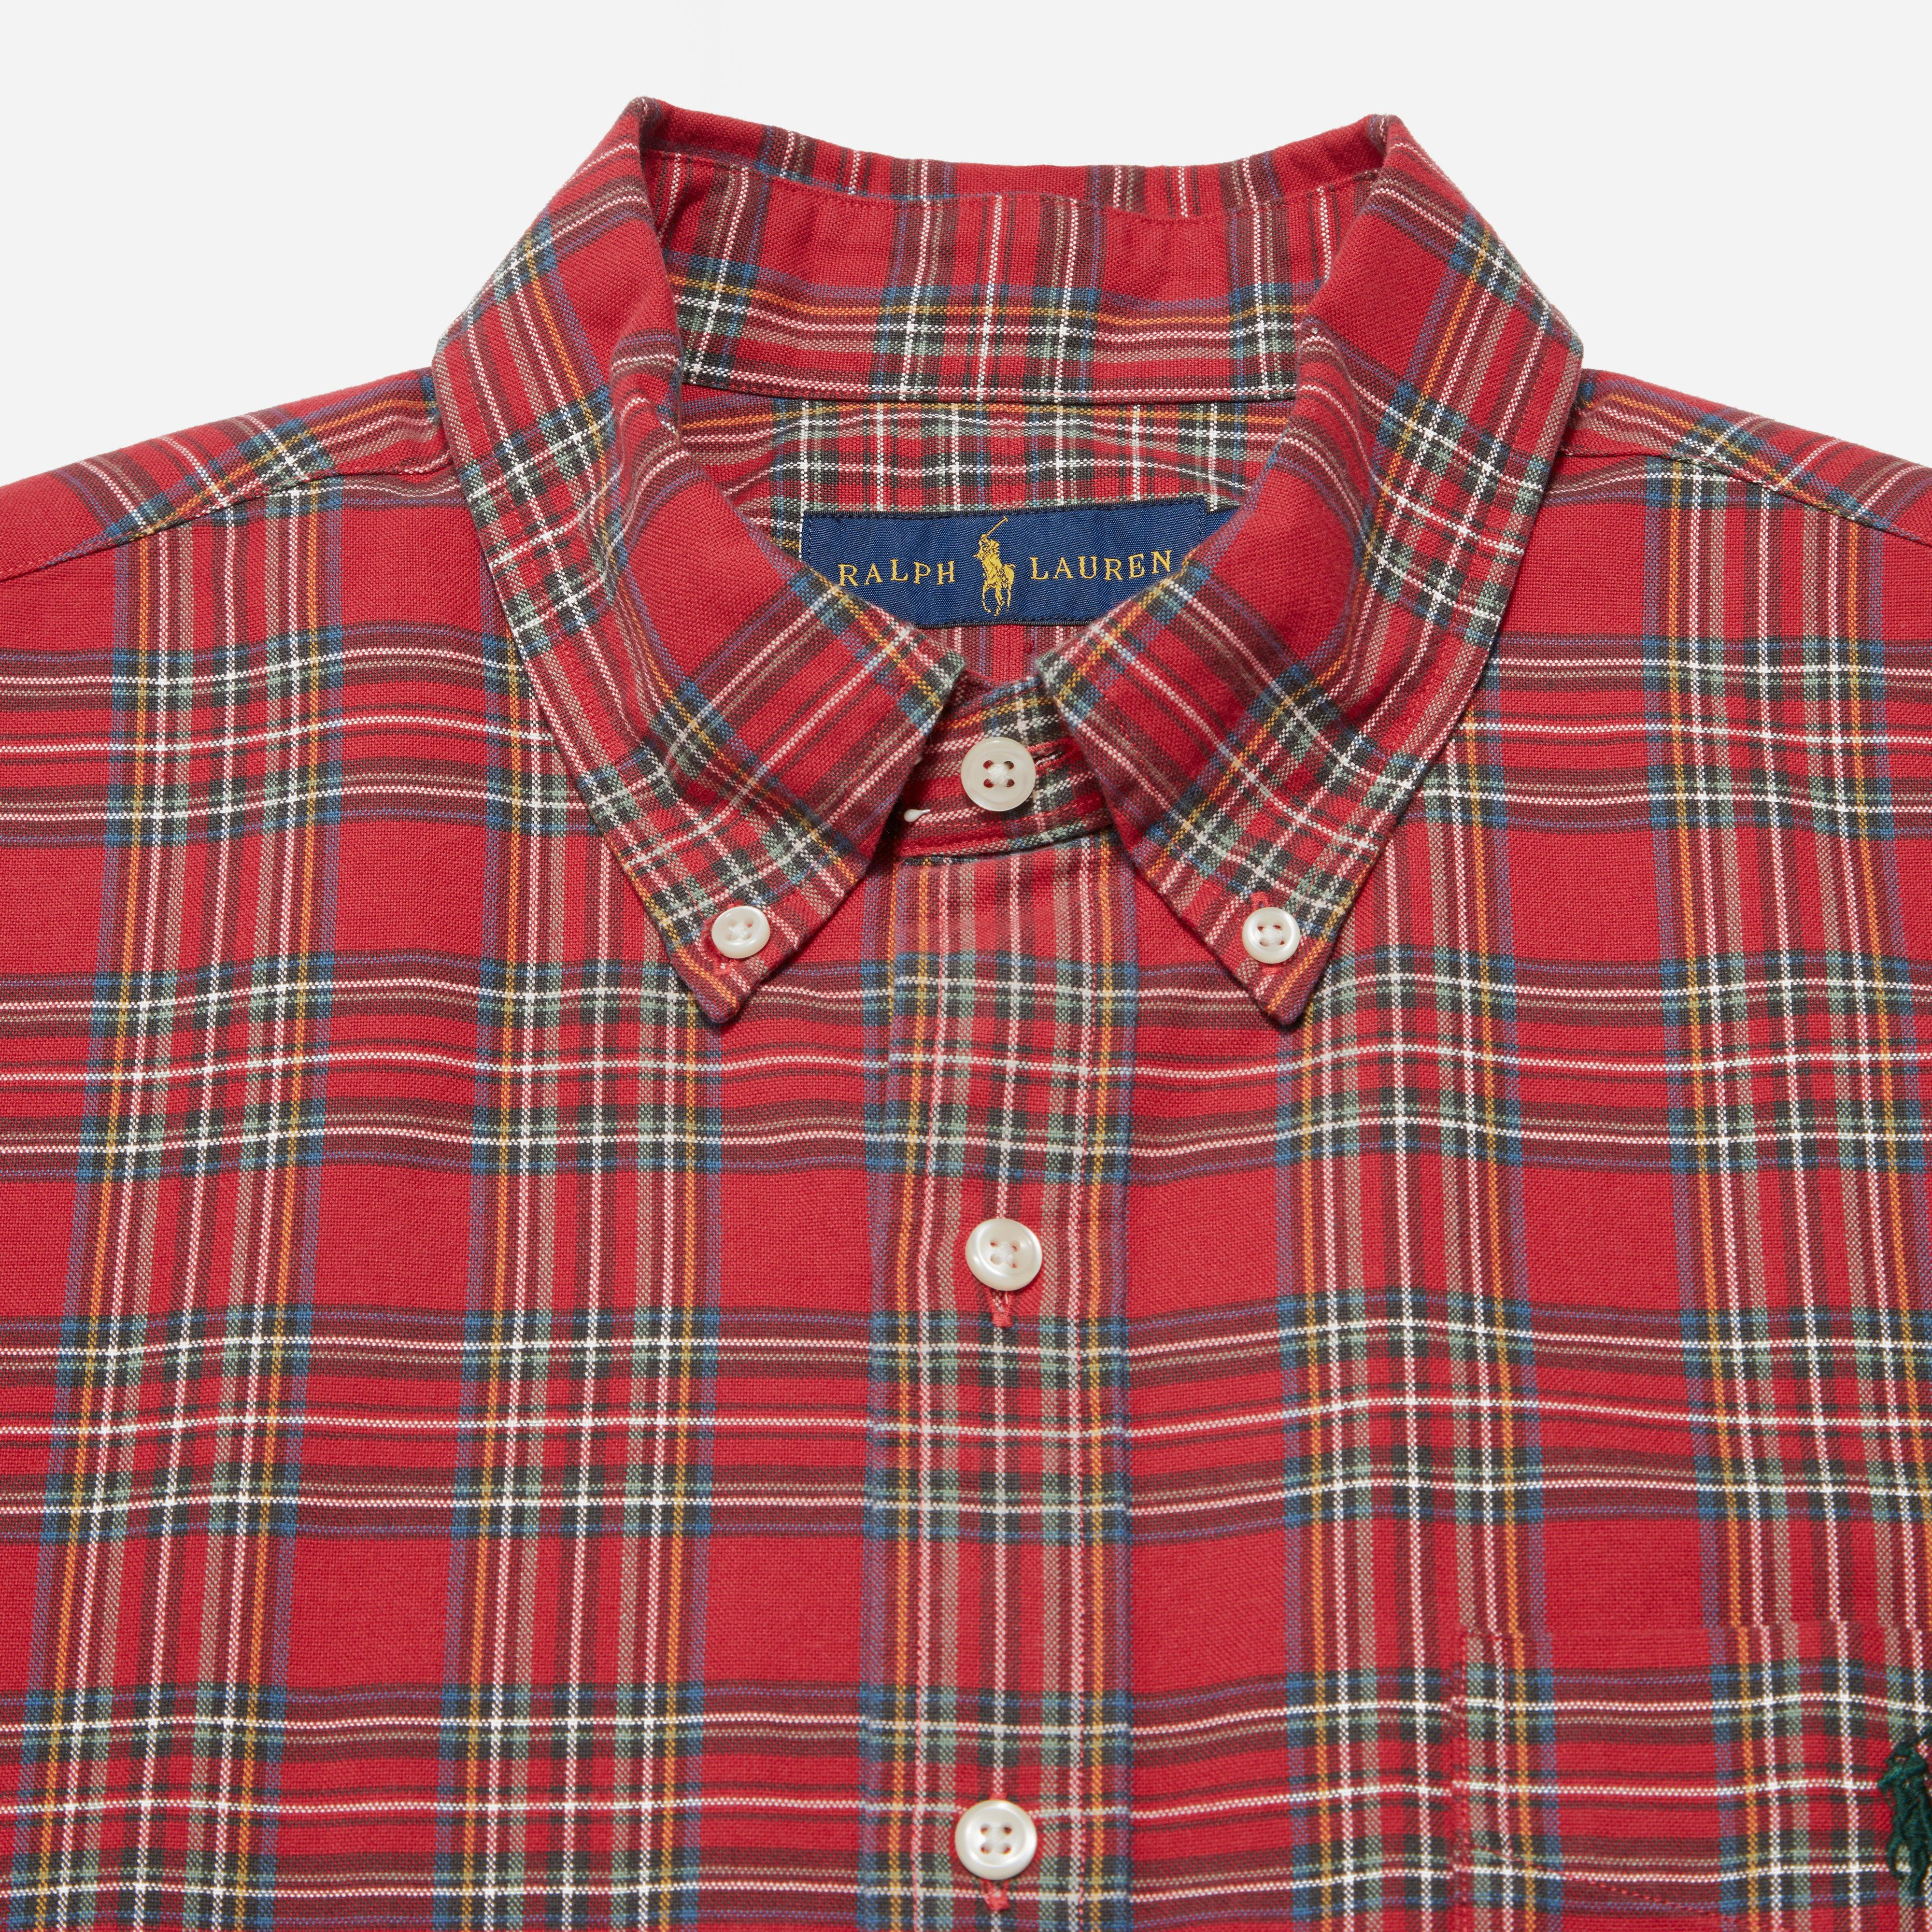 a2b09c0e1cb Lyst - Polo Ralph Lauren Oxford Check Shirt in Red for Men